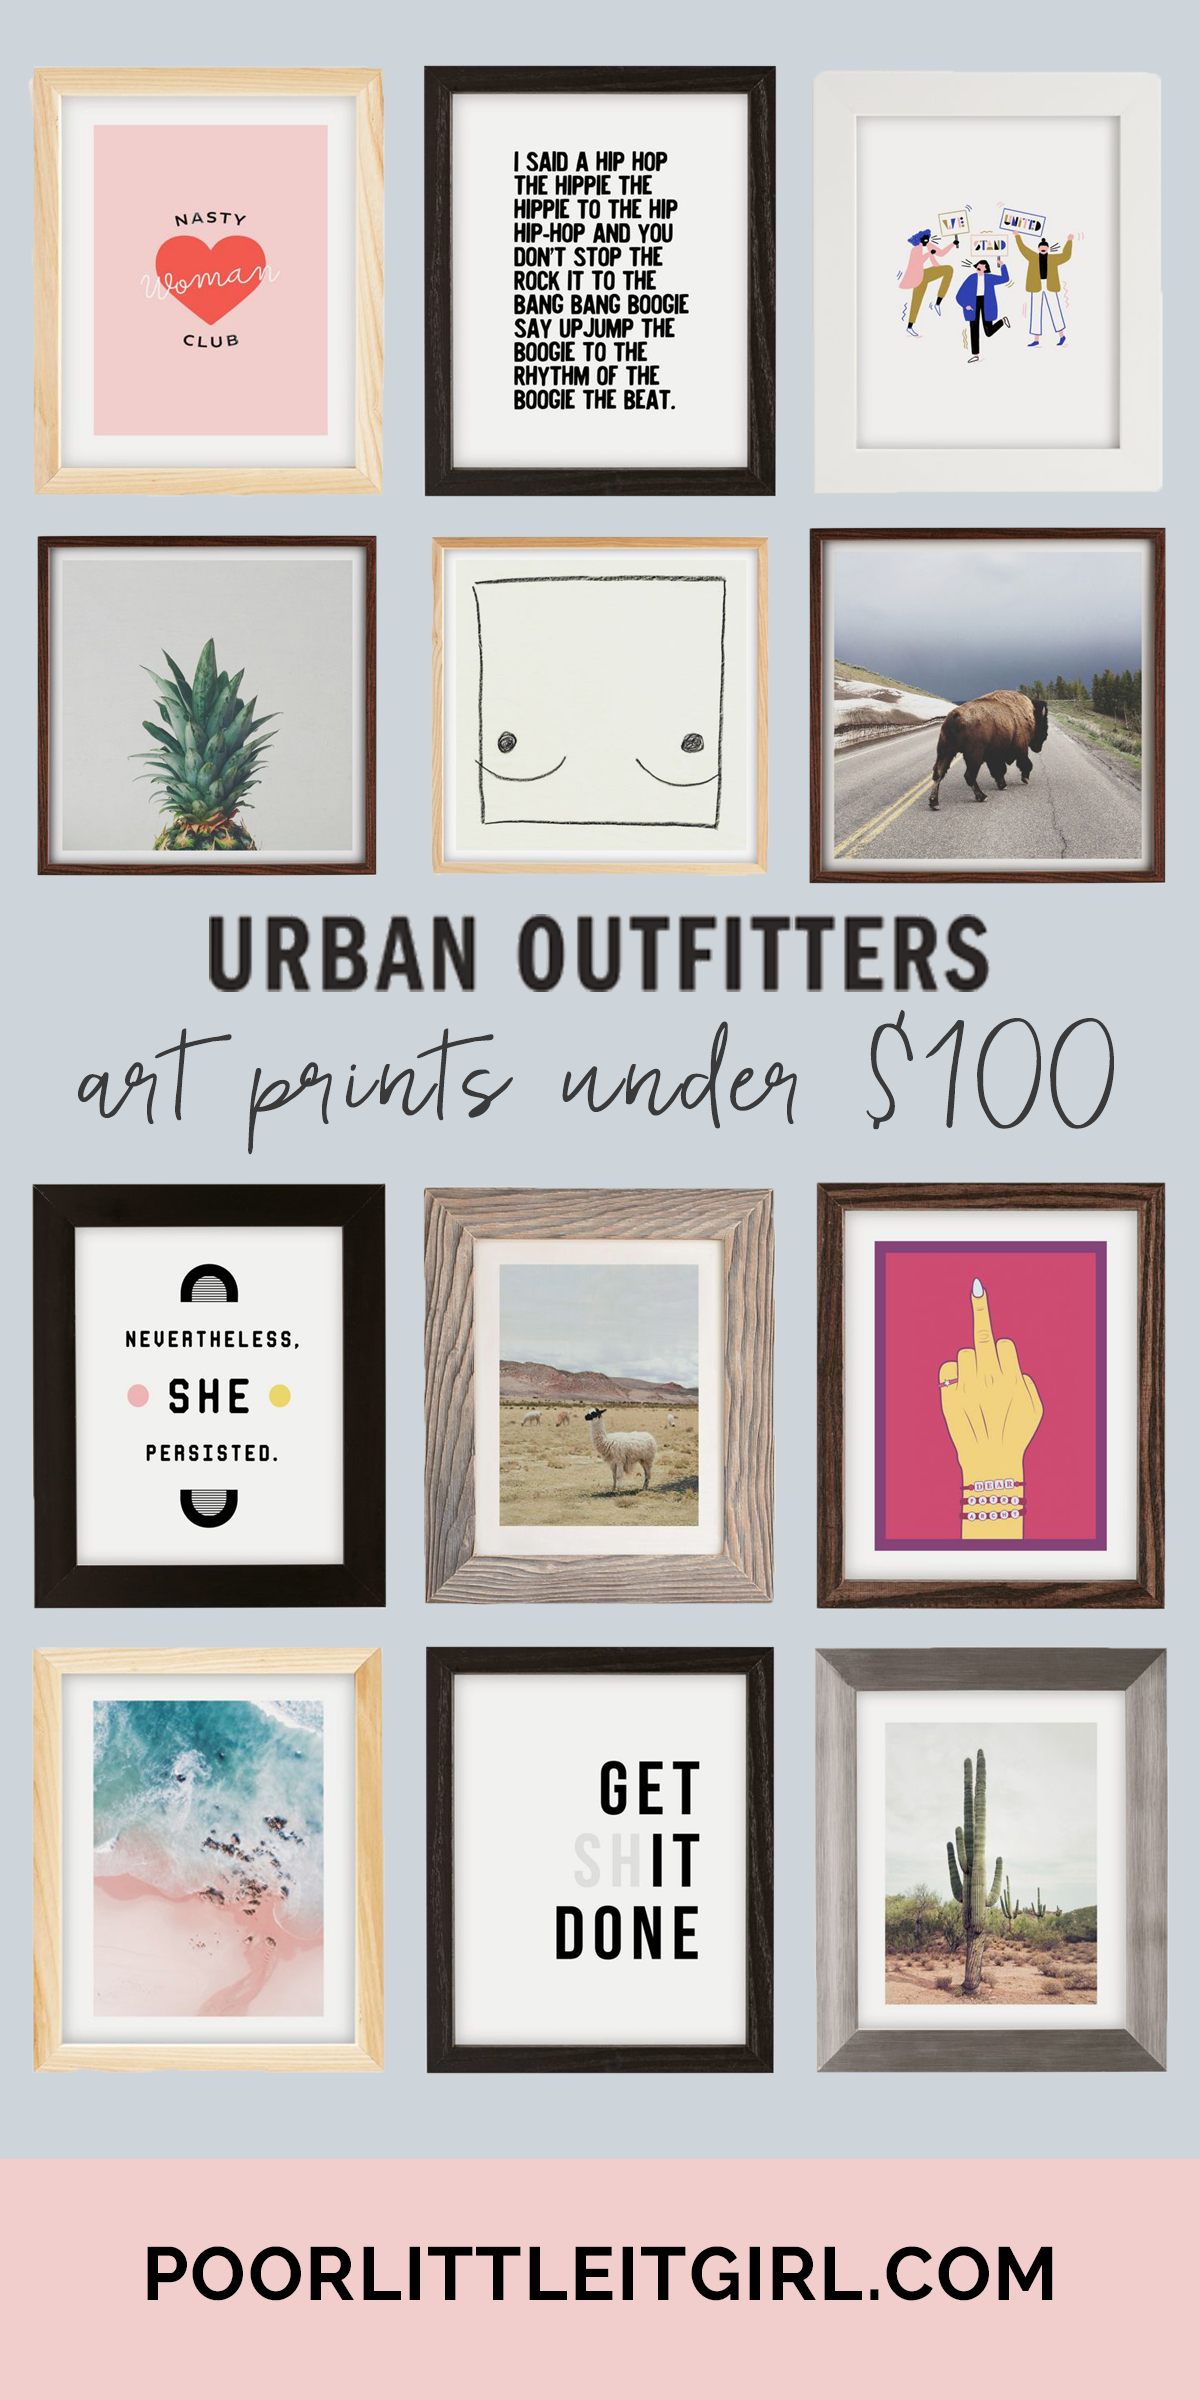 Art Prints Under $100 At Urban Outfitters - Poor Little It Girl